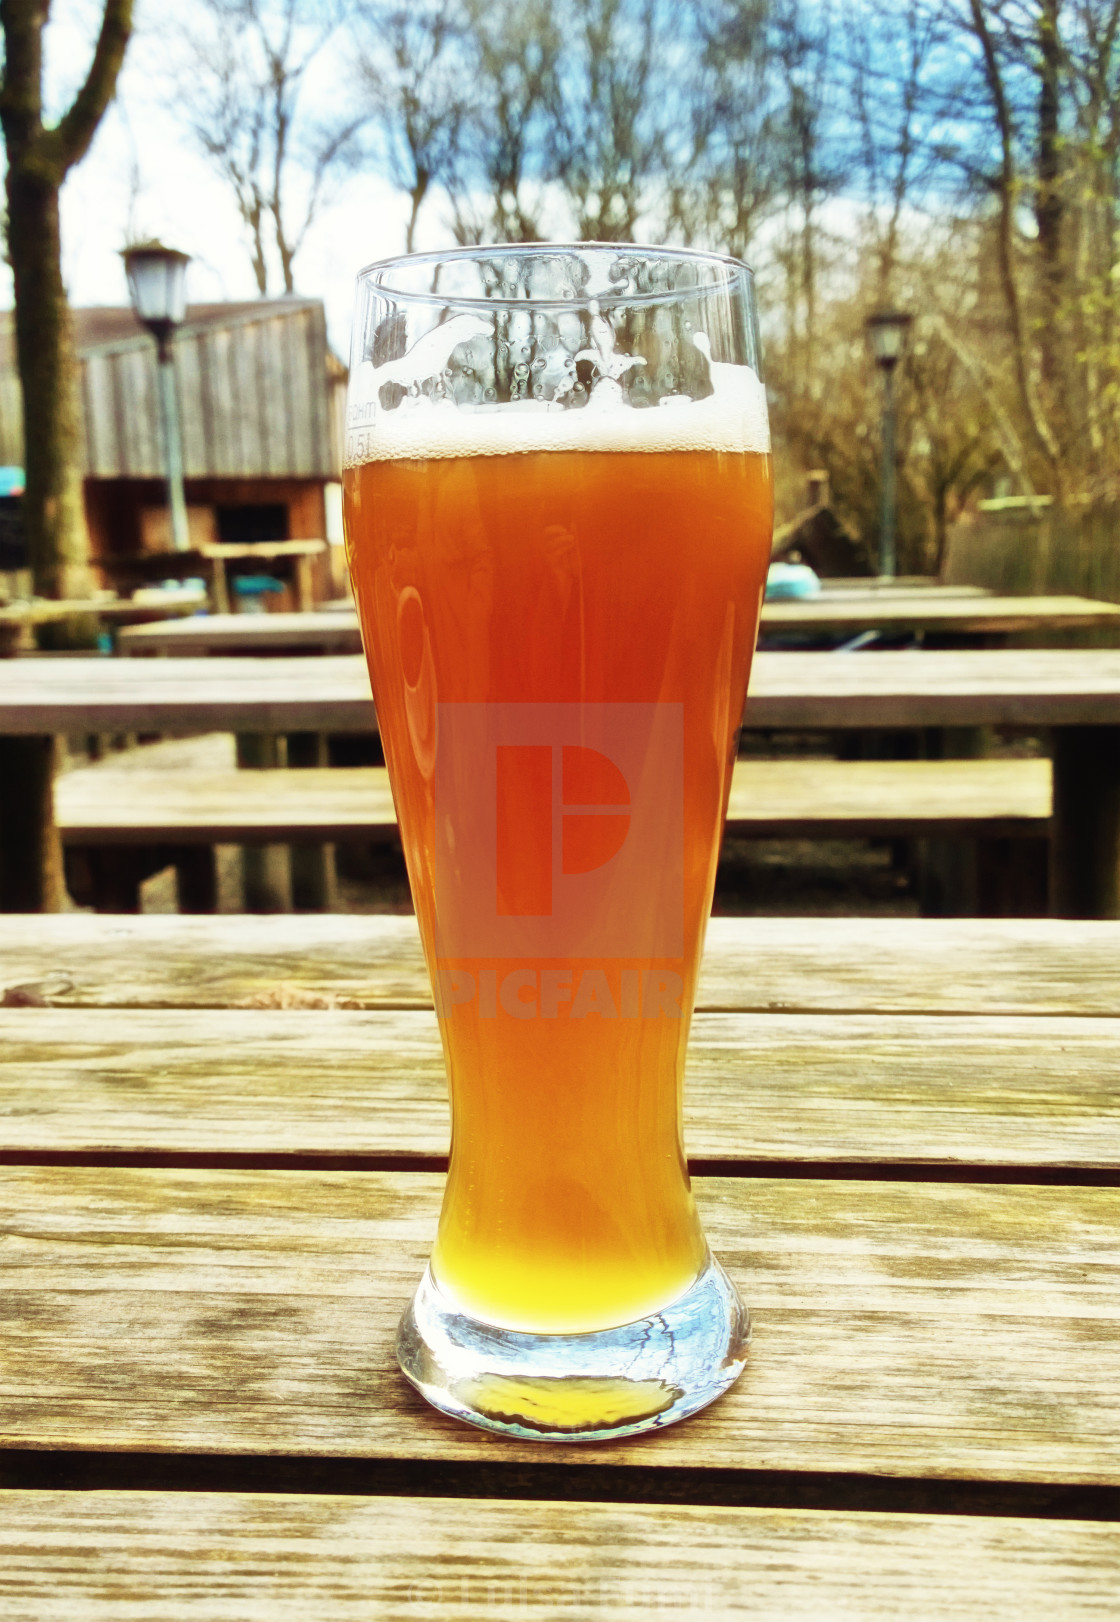 """Wheat bavarian beer in traditional glass at beer garden"" stock image"